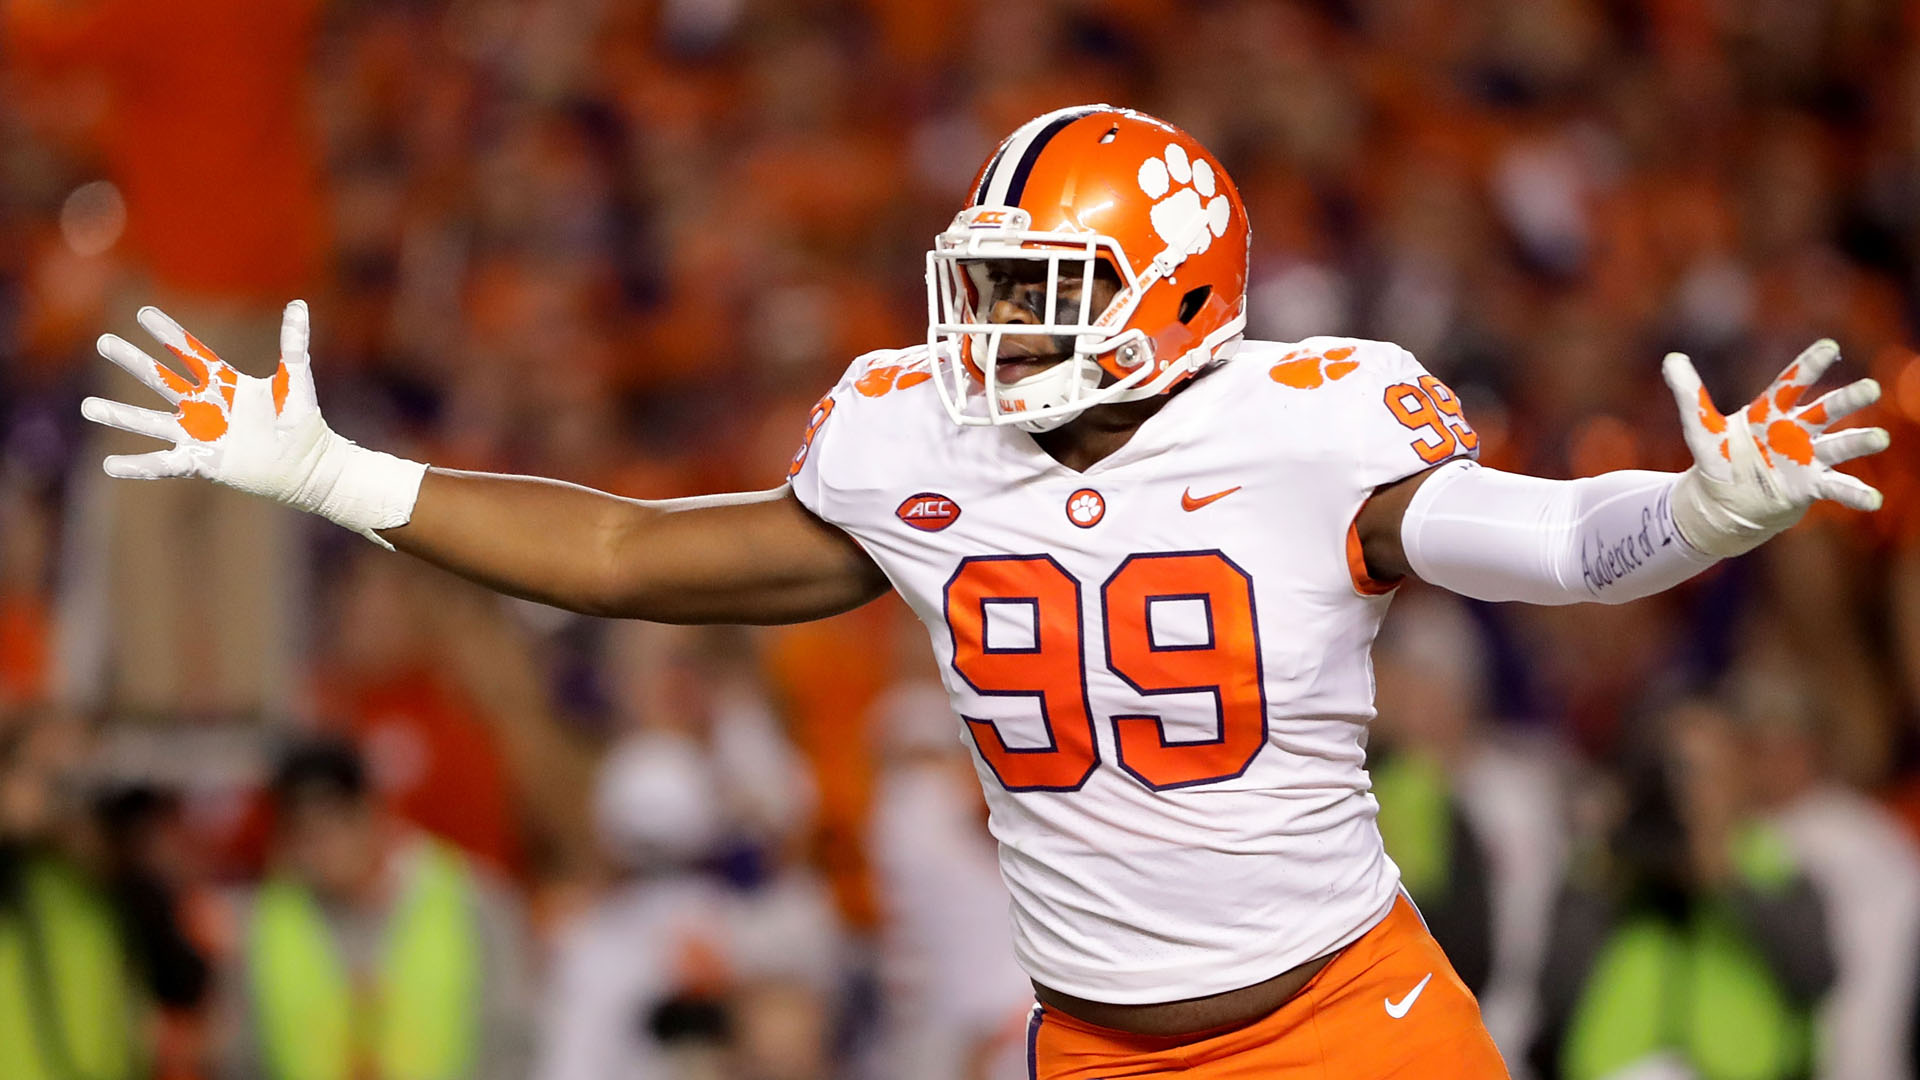 Christian Wilkins decides to remain at Clemson for 2018 season